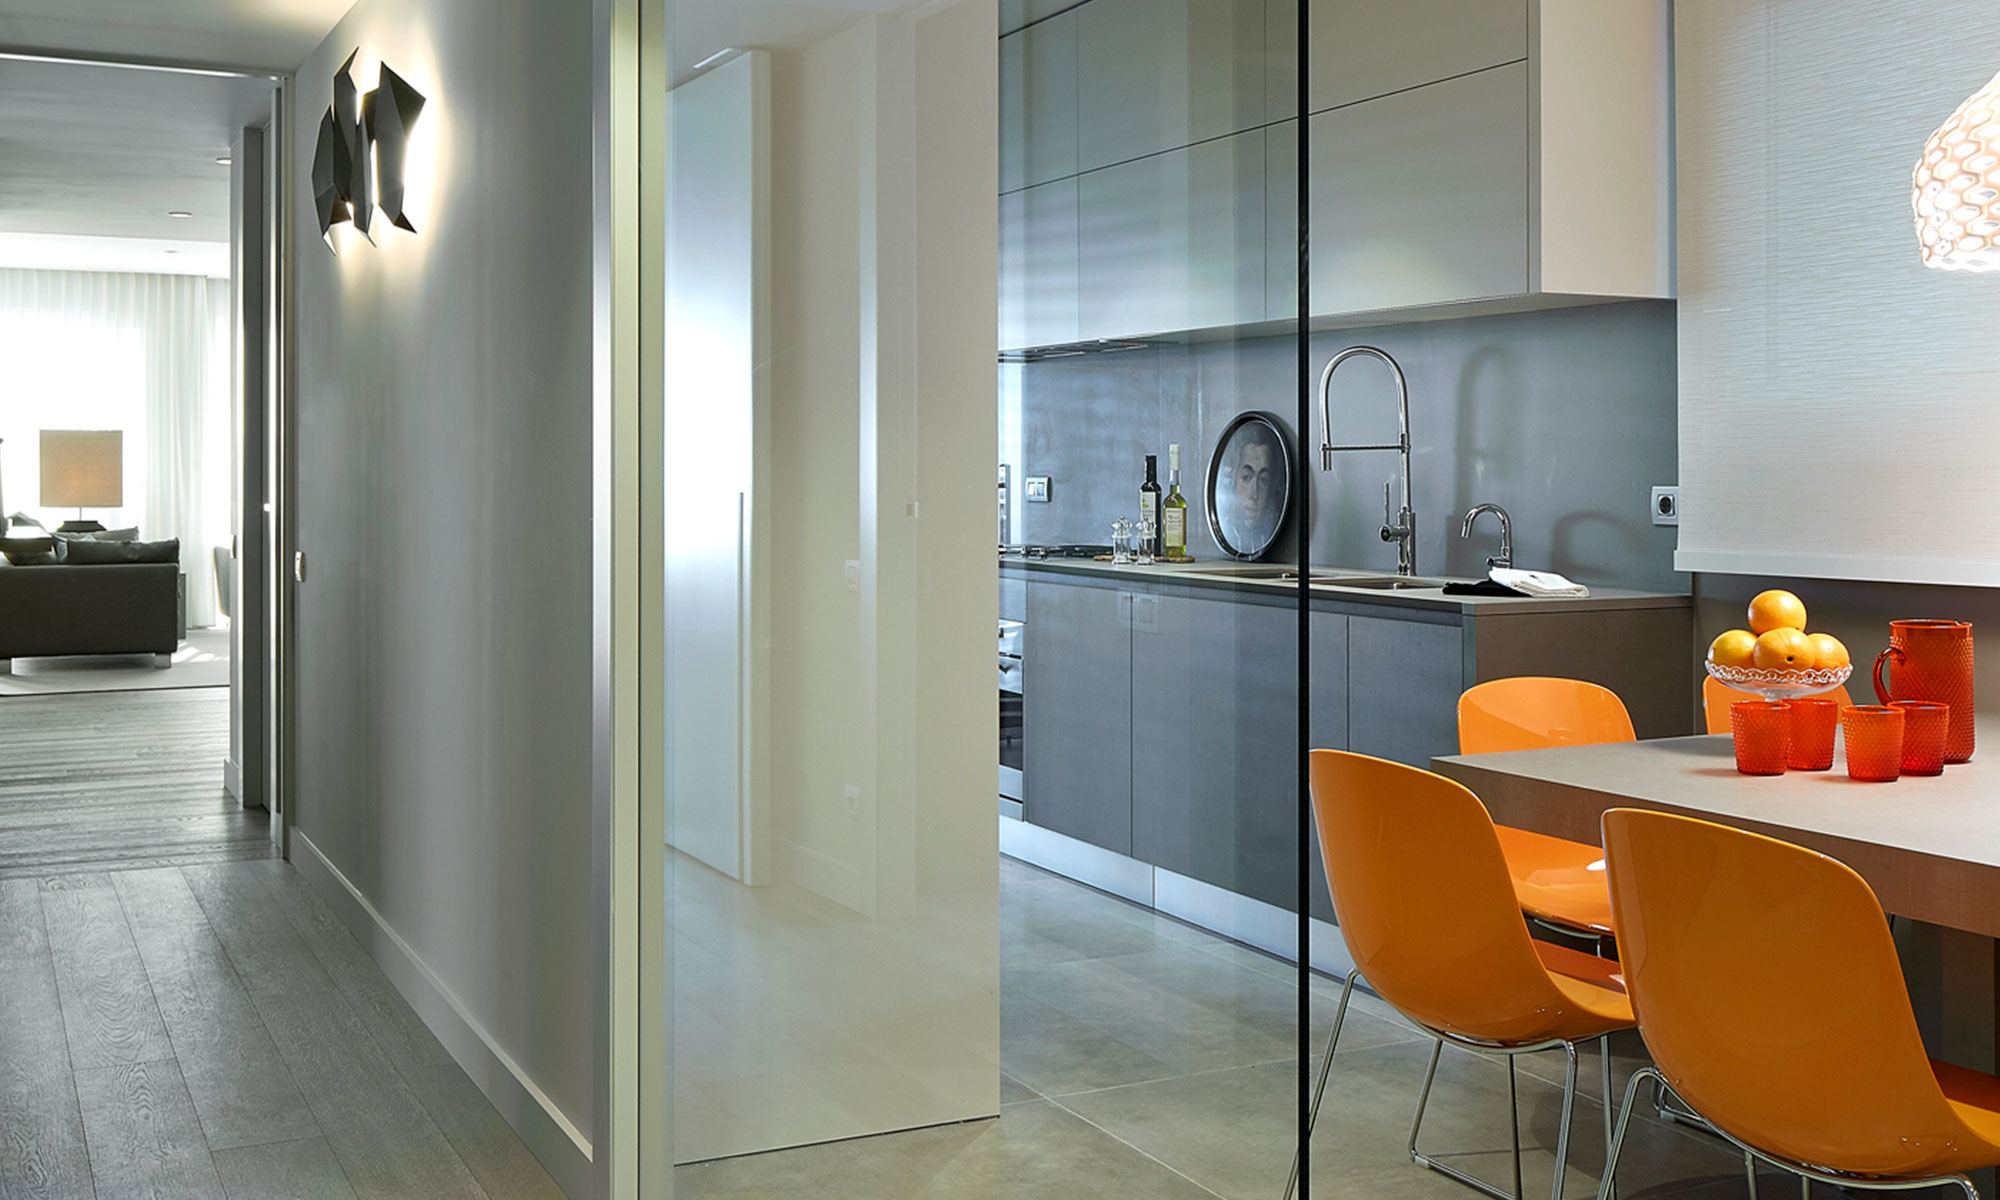 glass wall separating kitchen | Molins Design interioristas